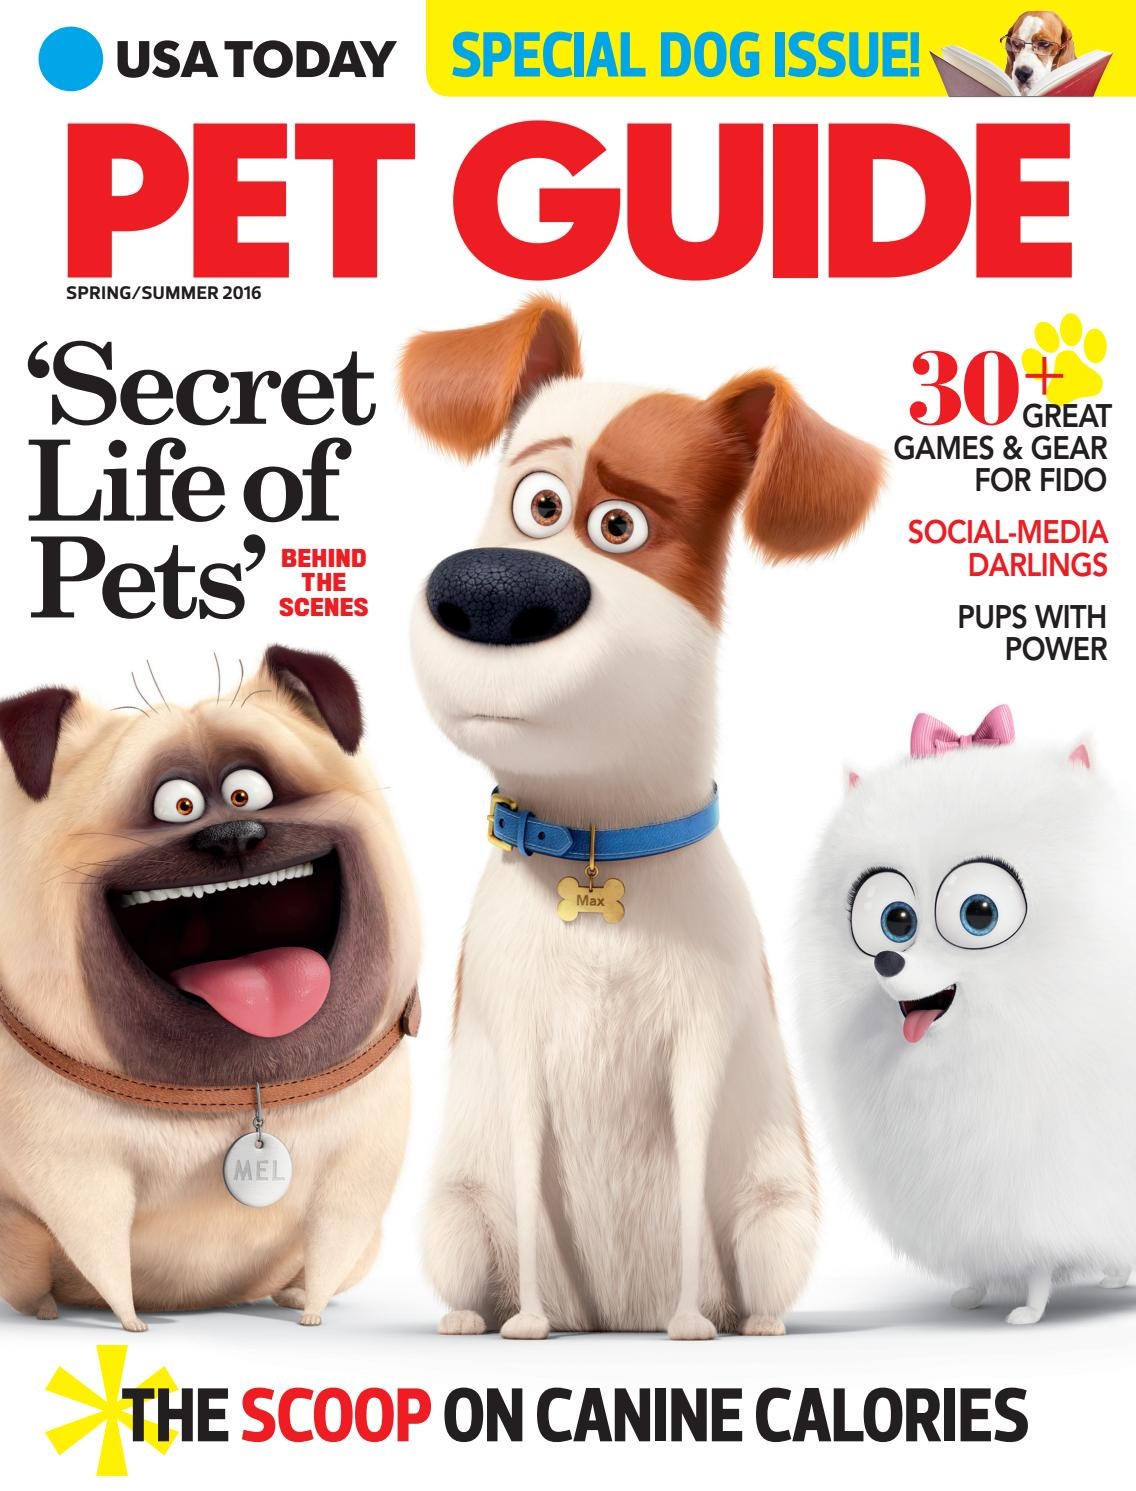 PET Guide Magazine 2016 by STUDIO Gannett - issuu